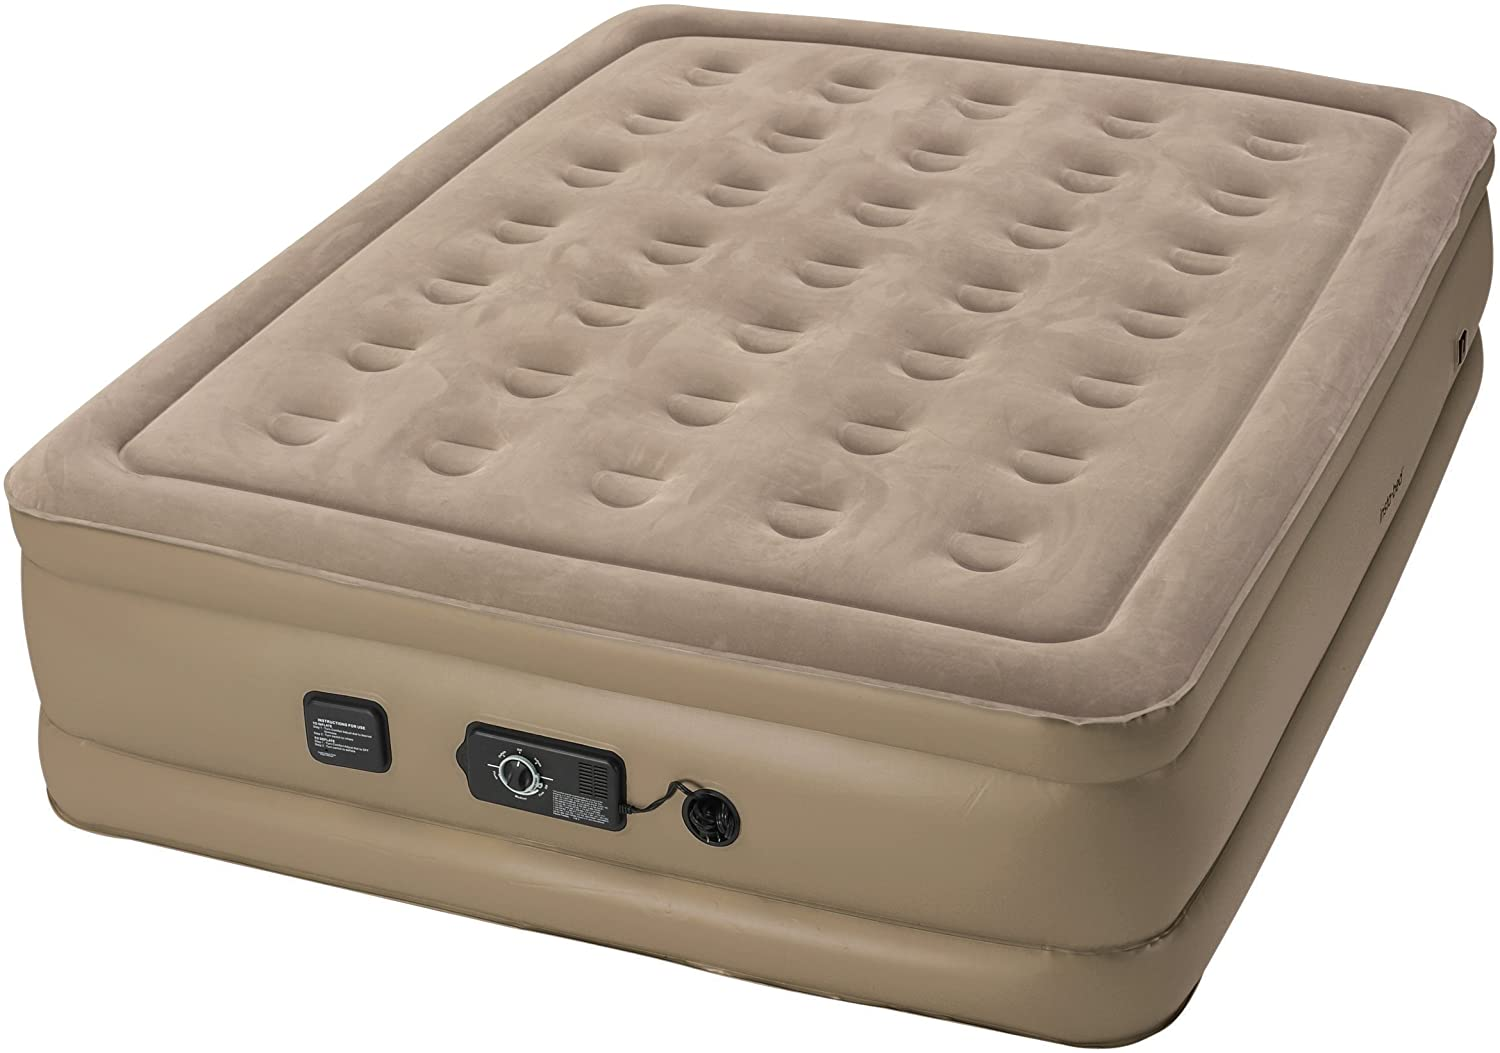 Insta-Bed Raised Never Flat Pump Air Mattress, Queen